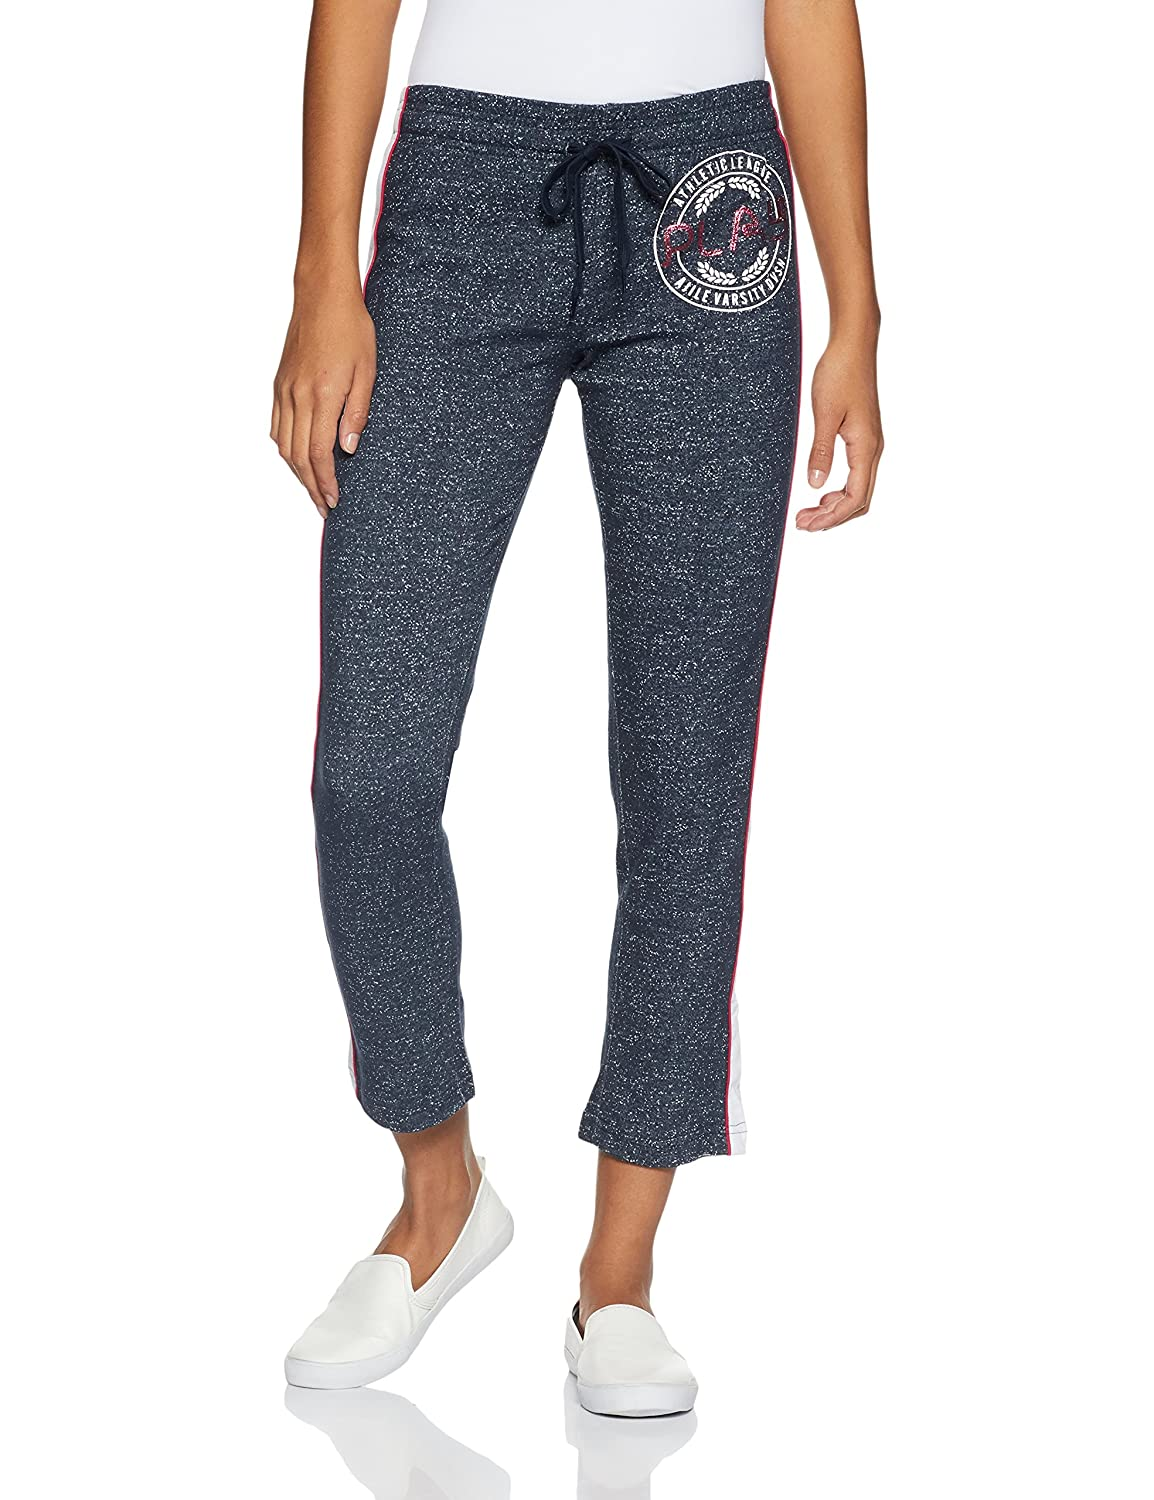 Ajile By Pantaloons Women's Straight Fit Track Pant